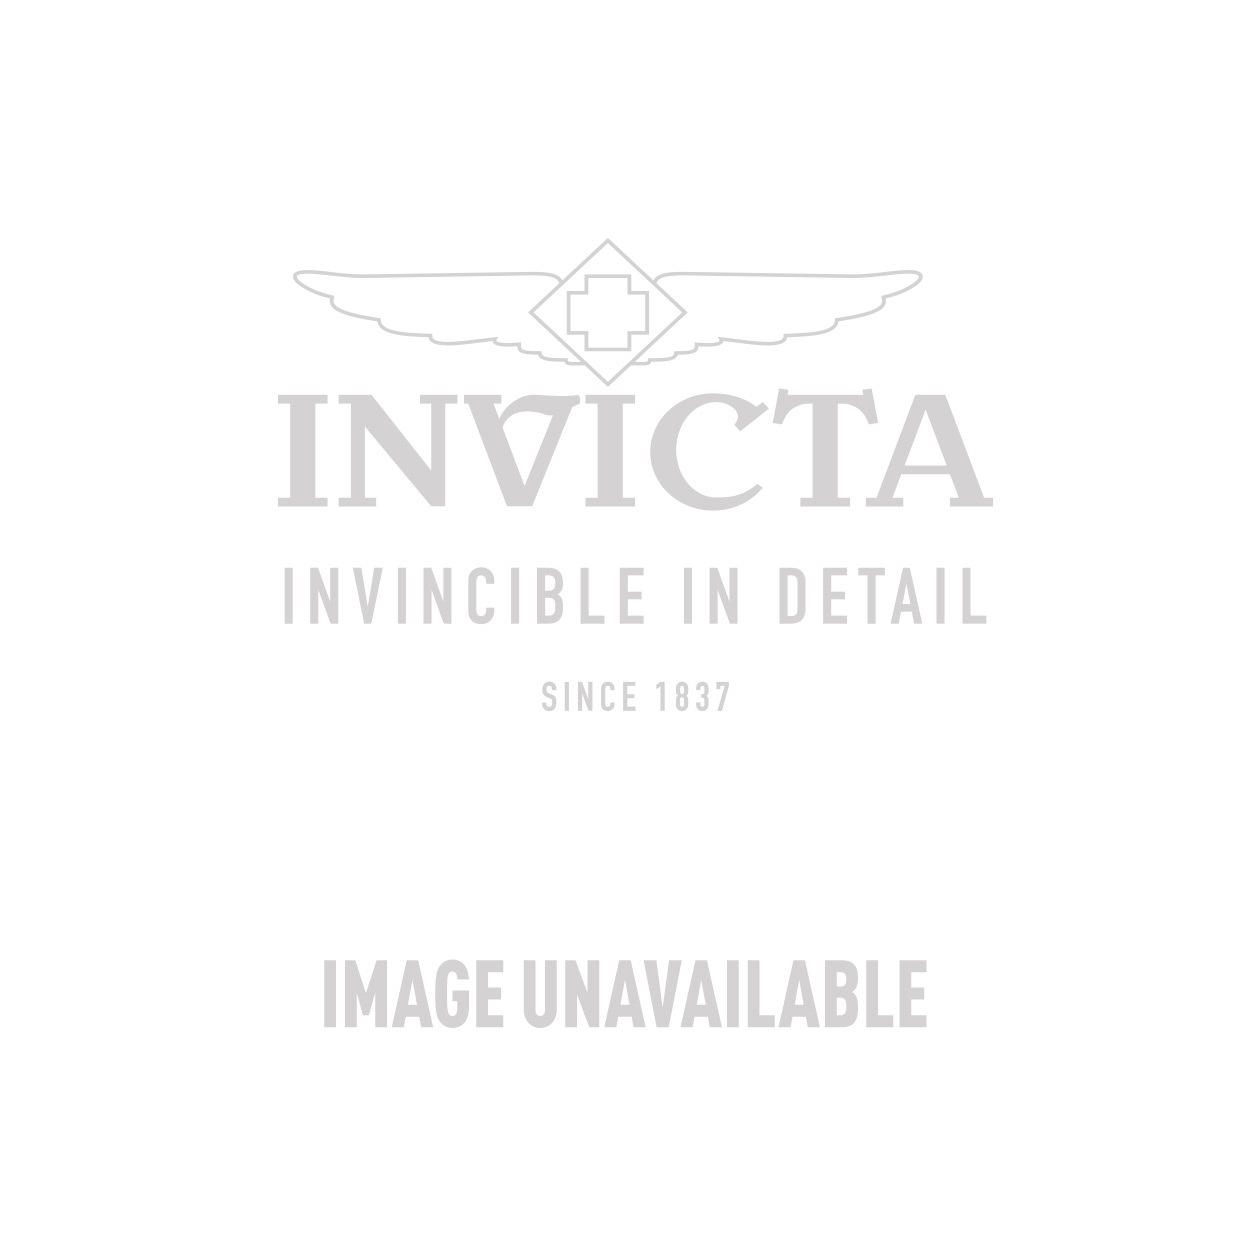 c037a4a5b243 STAR WARS - Official Invicta Store